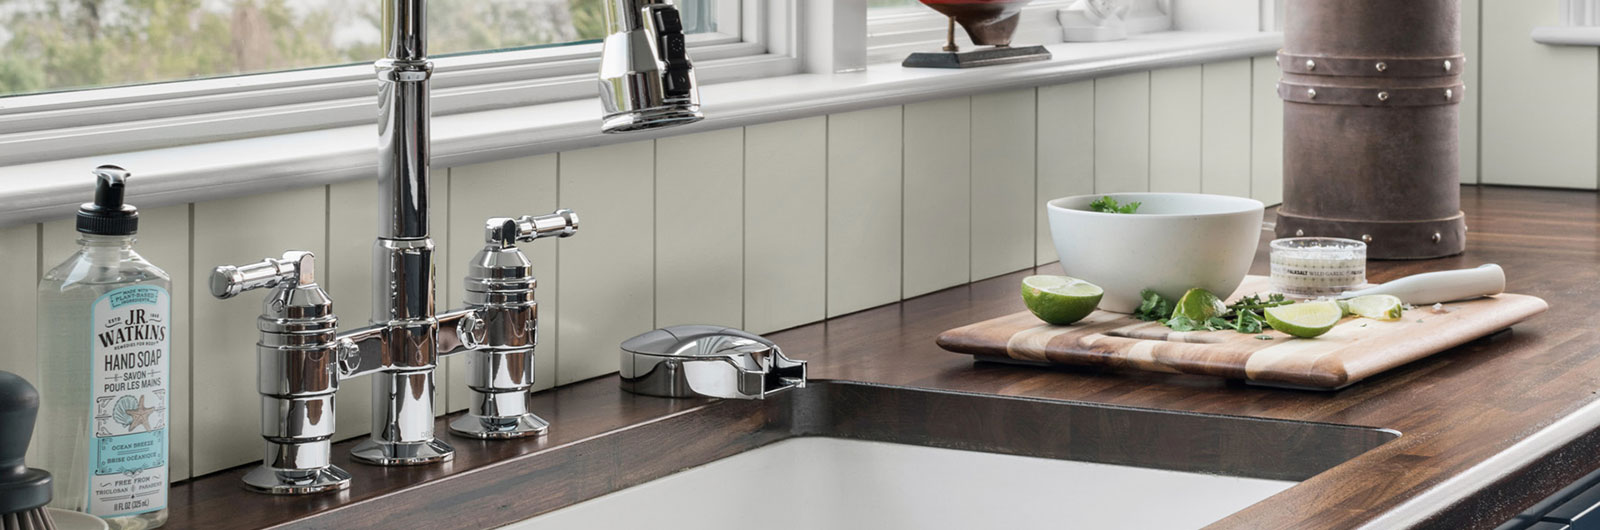 Chrome glass rinser on the right side of sink in classy kitchen